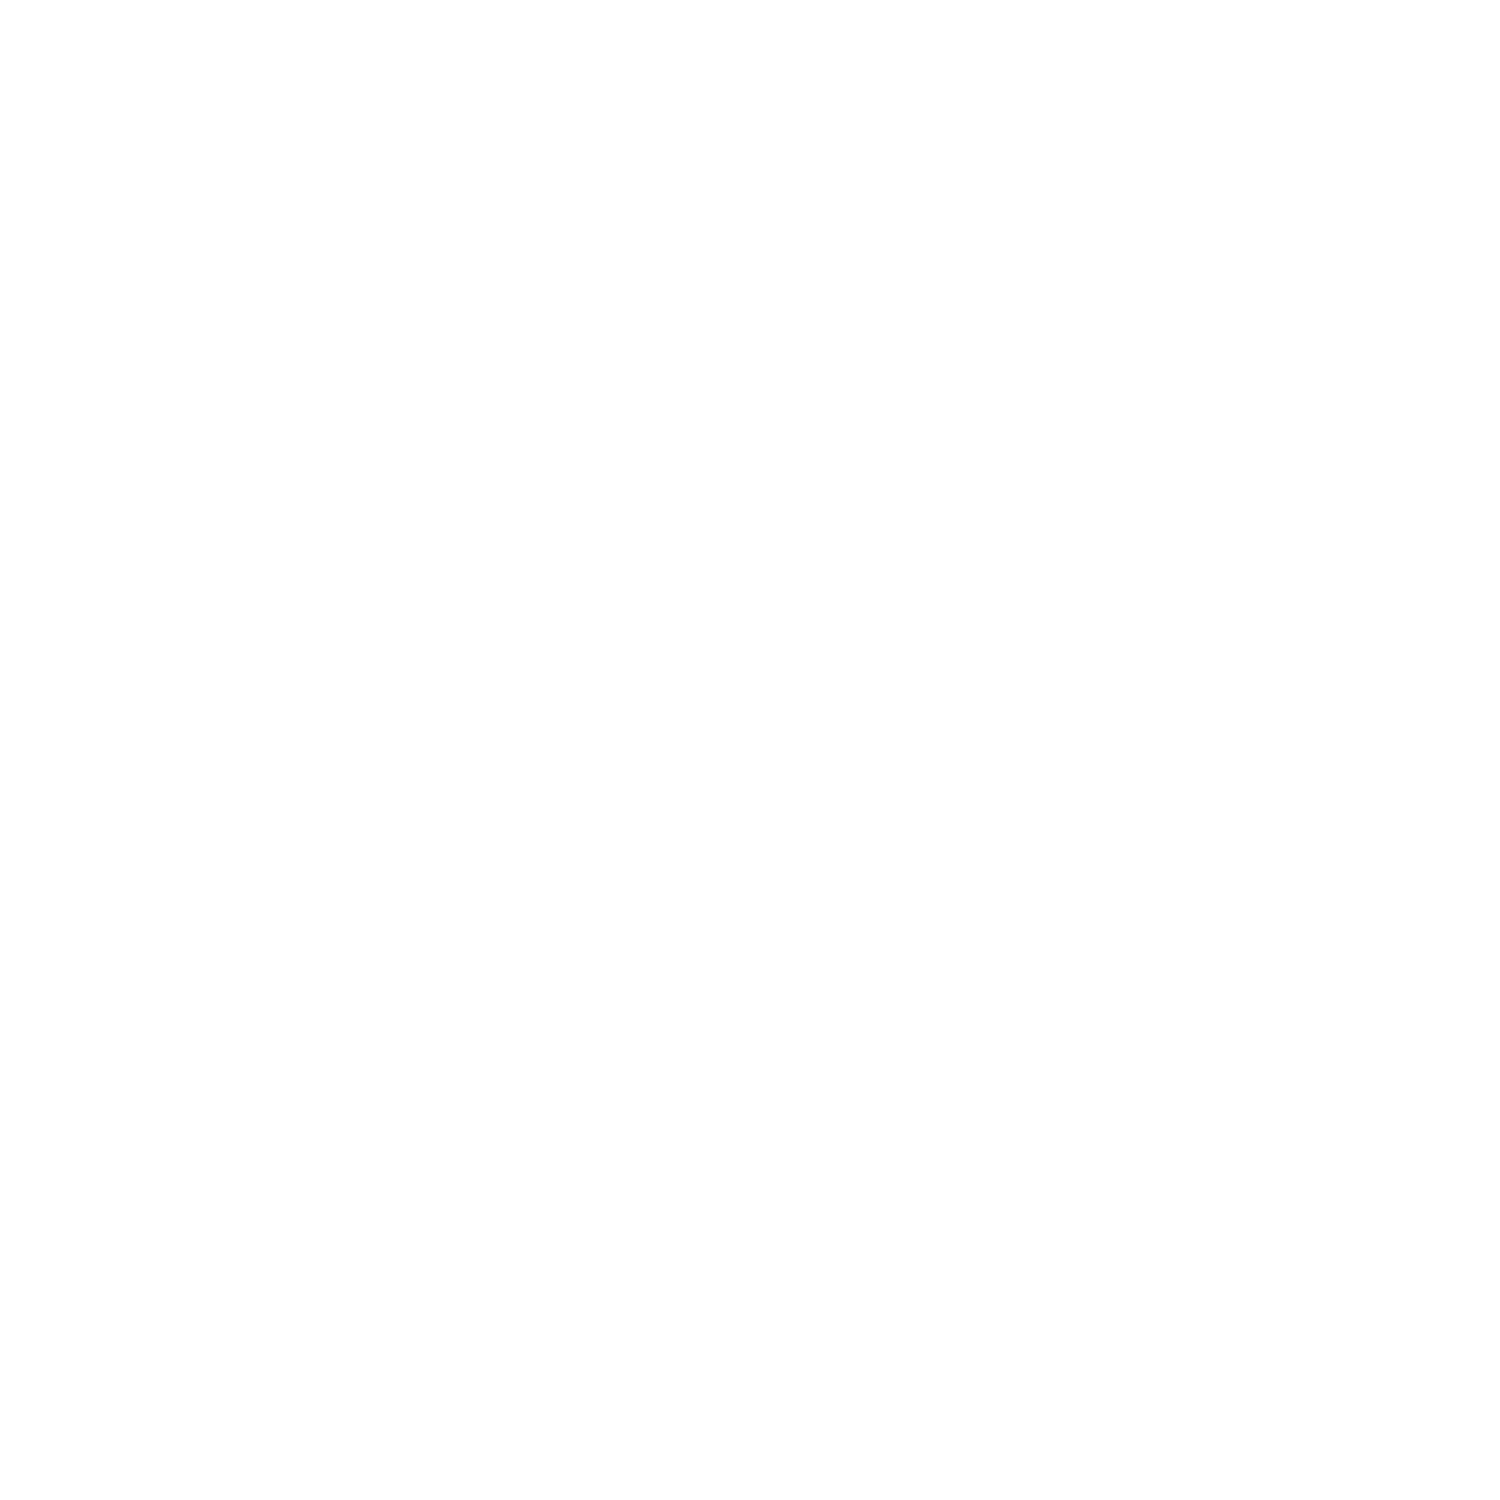 The Kris Barras Band UK logo